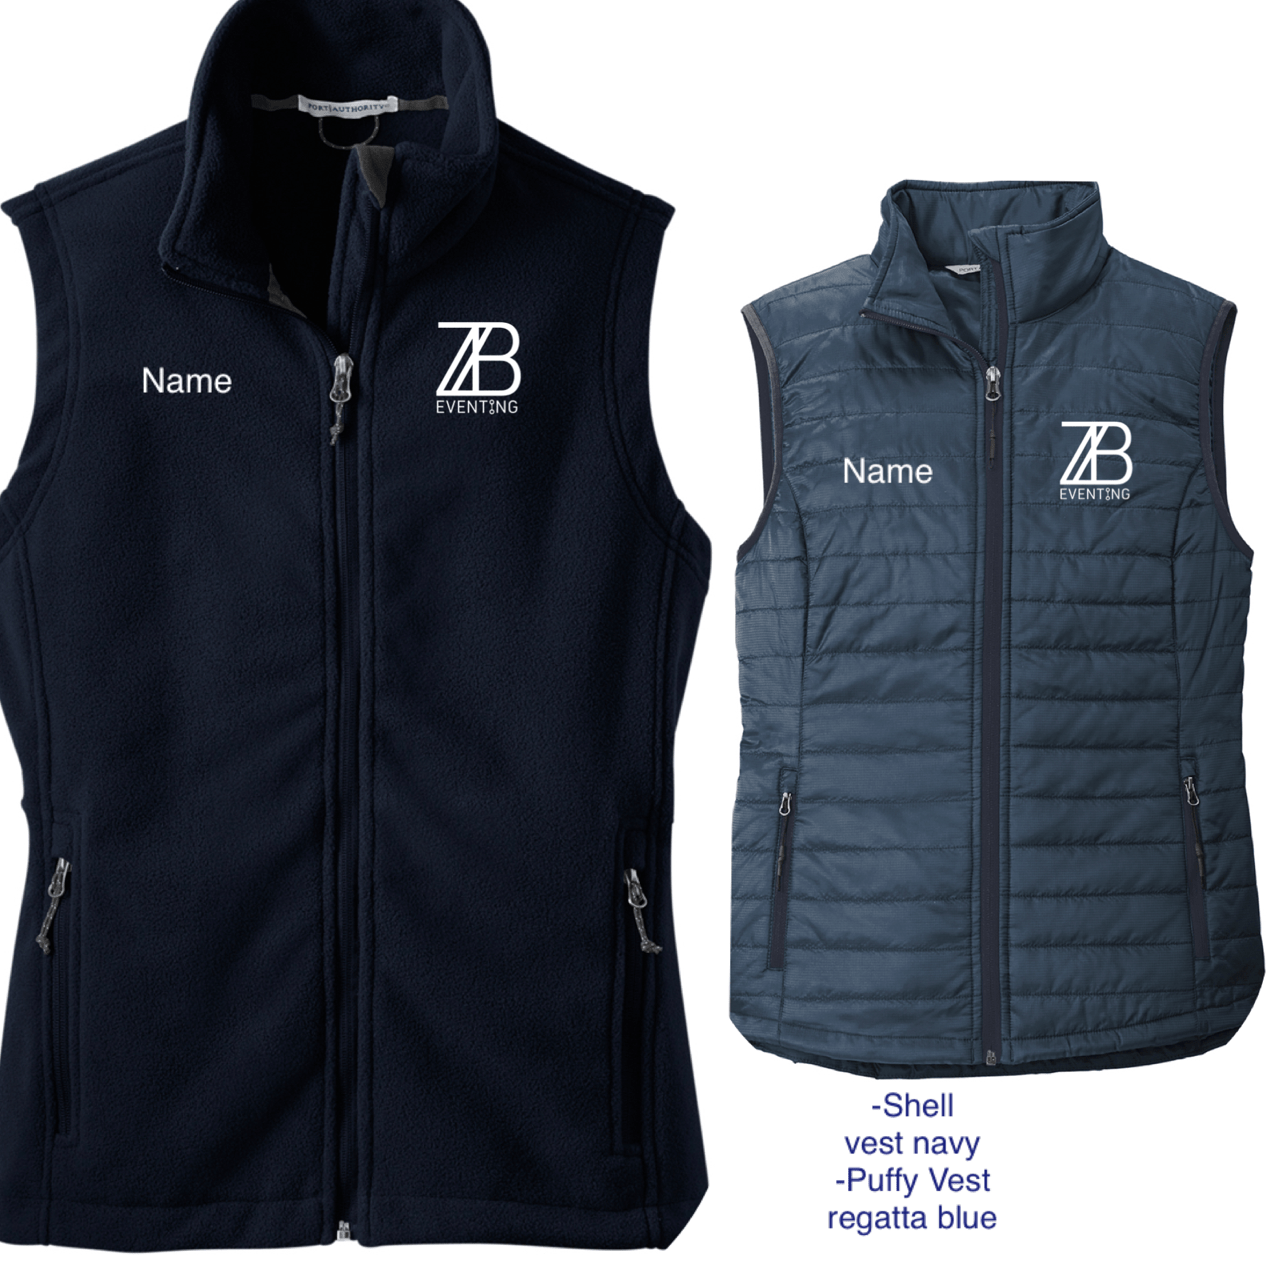 Equestrian Team Apparel Custom Team Shirts ZB Eventing Vest equestrian team apparel online tack store mobile tack store custom farm apparel custom show stable clothing equestrian lifestyle horse show clothing riding clothes horses equestrian tack store